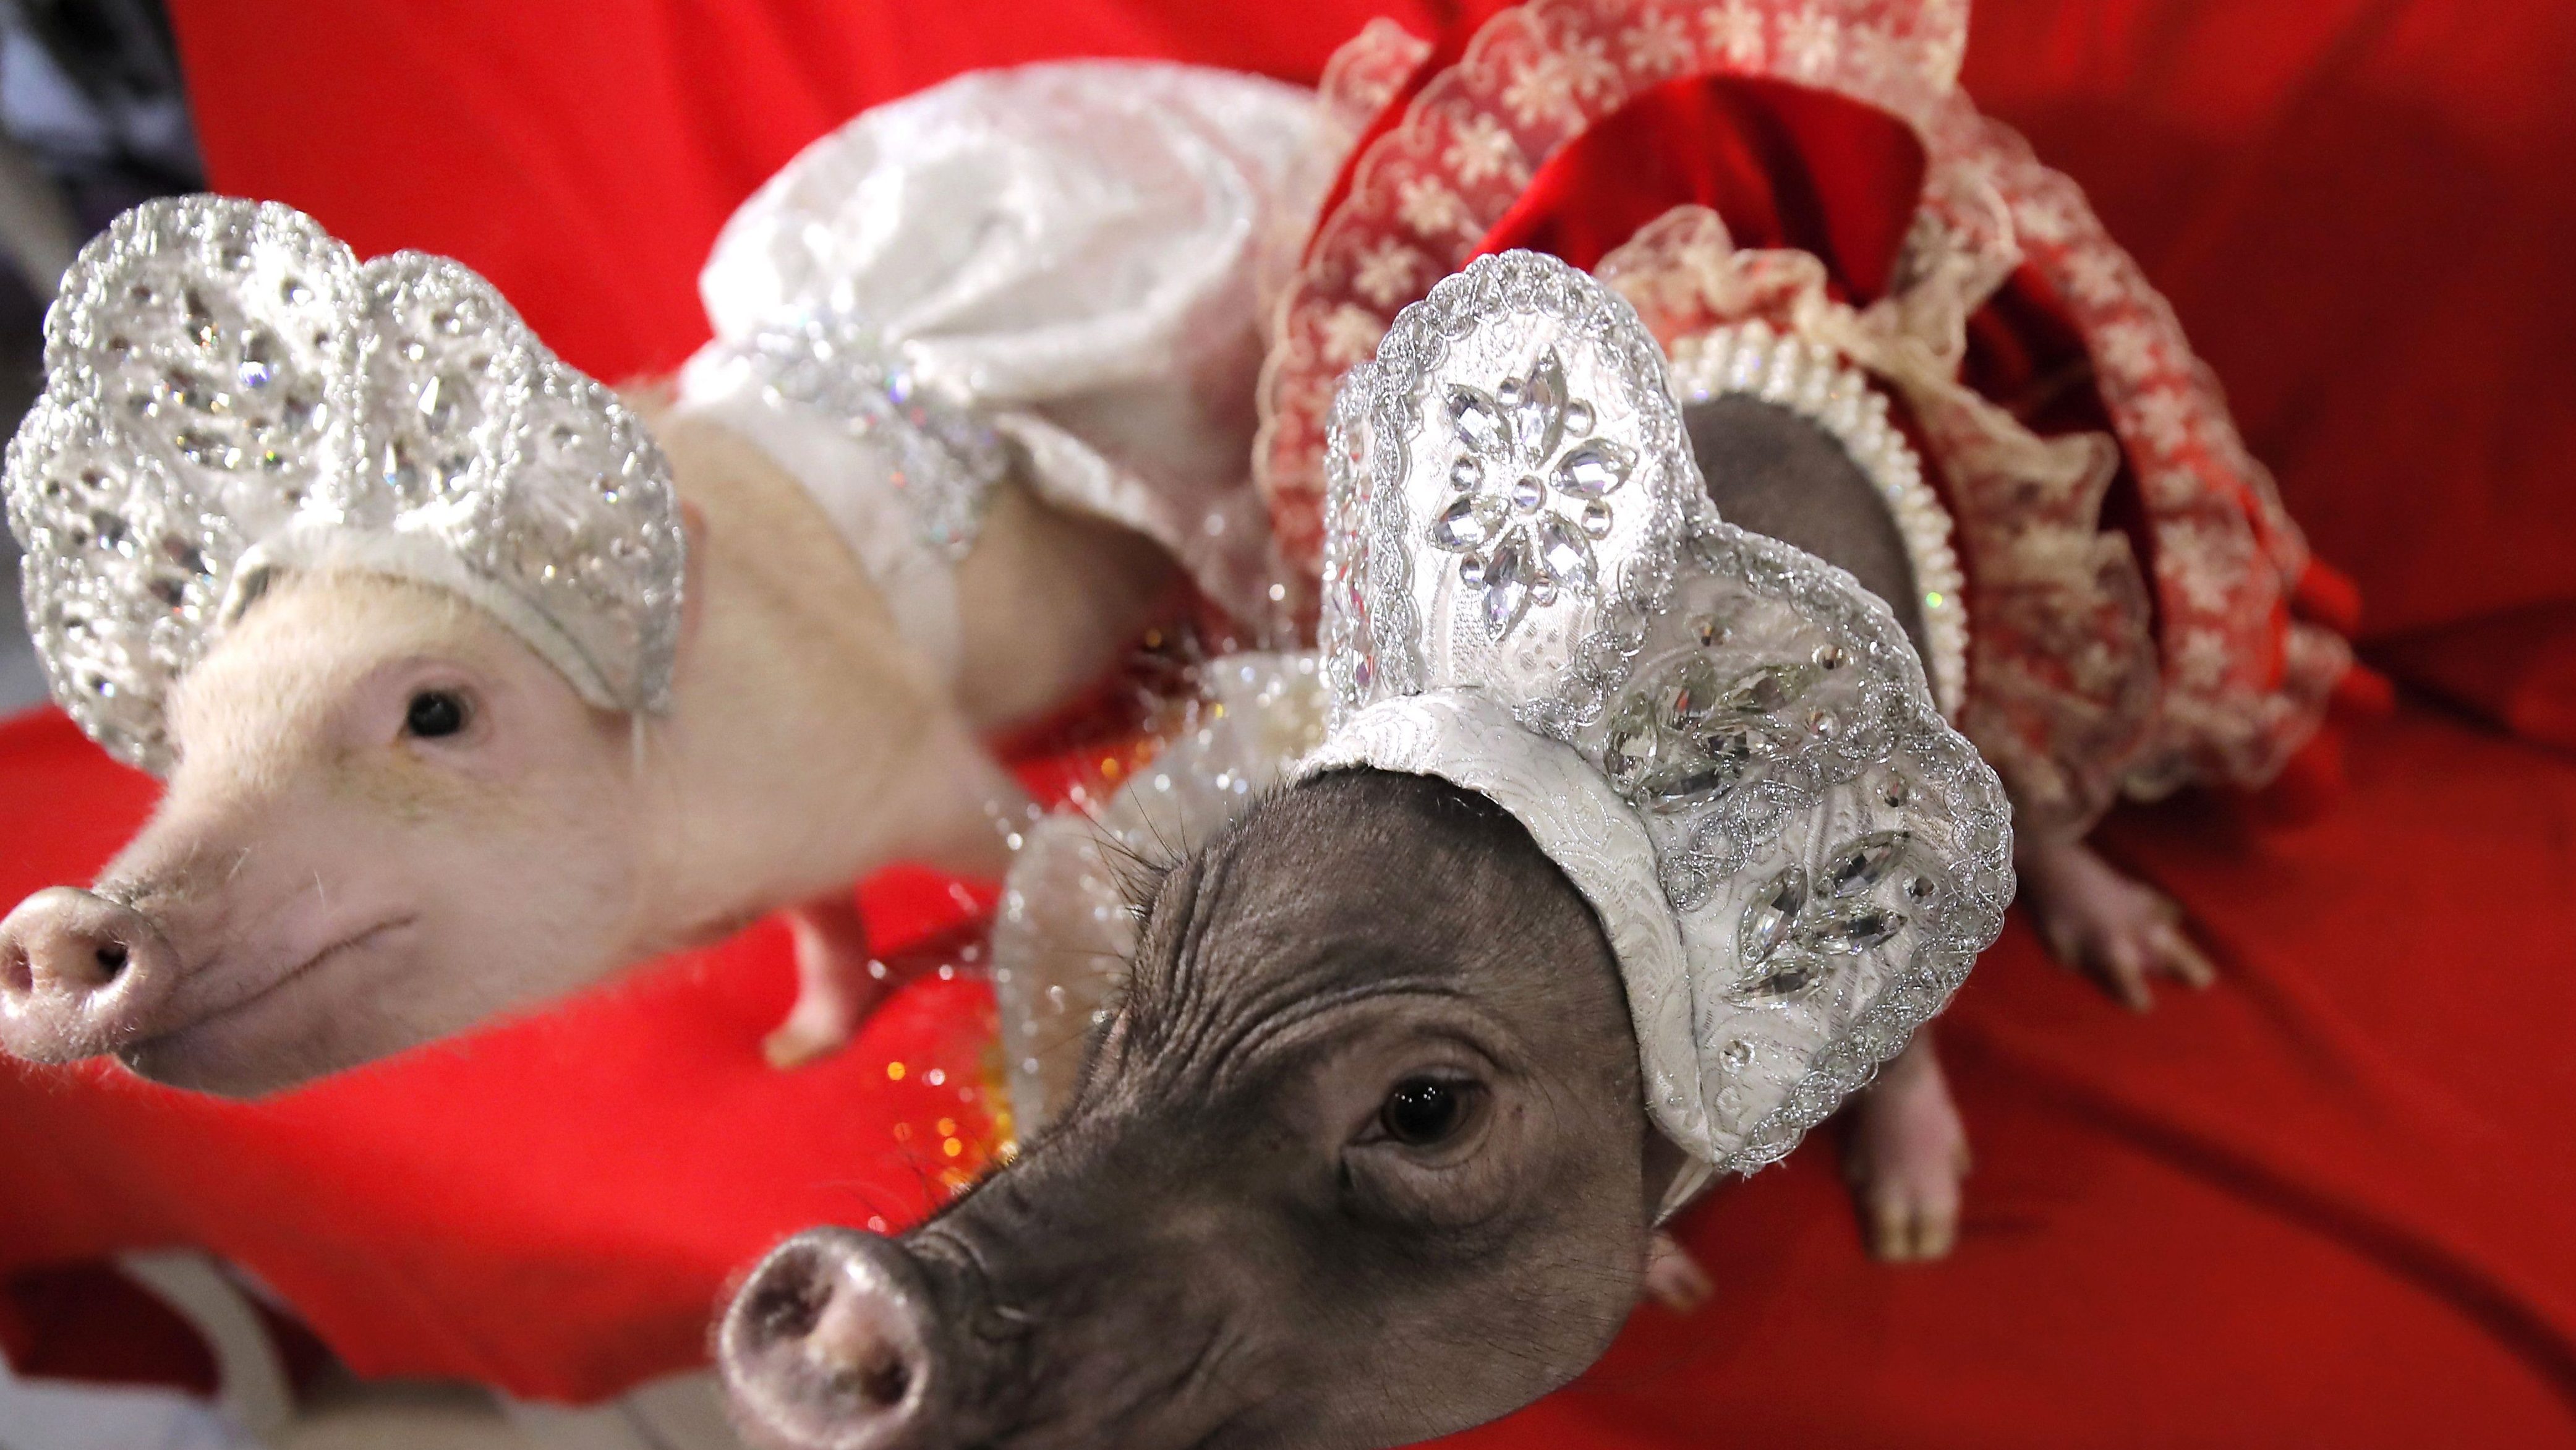 Year of the Pig: When is Chinese New Year 2019? — Quartz